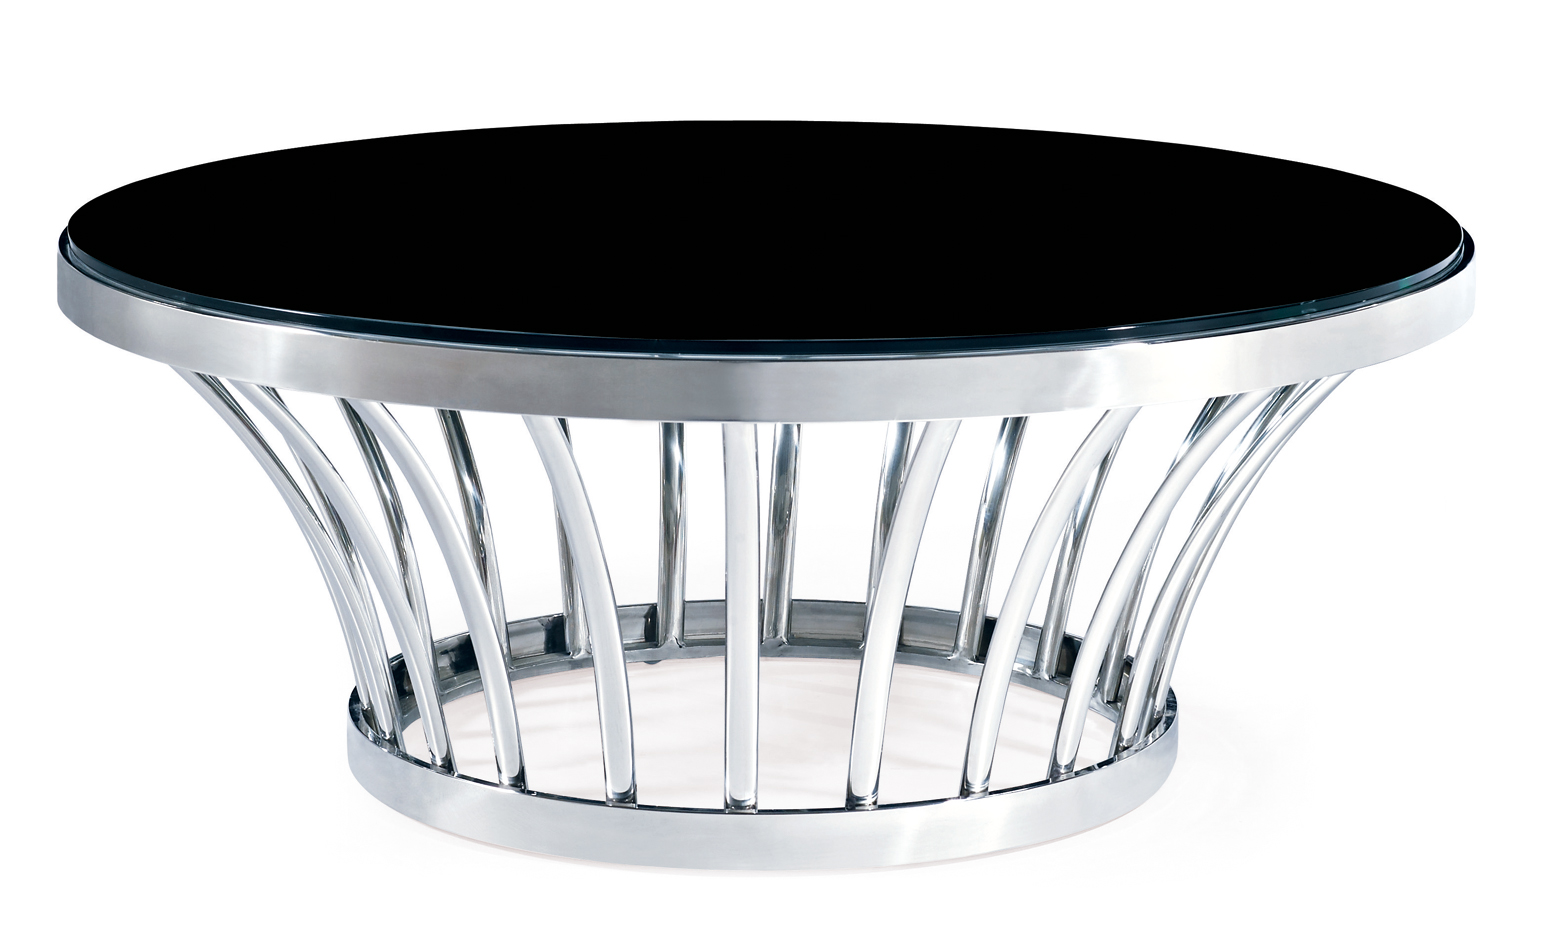 SHIMING FURNITURE MS-3302 Black tempered glass round top coffee table with stainles steel foot